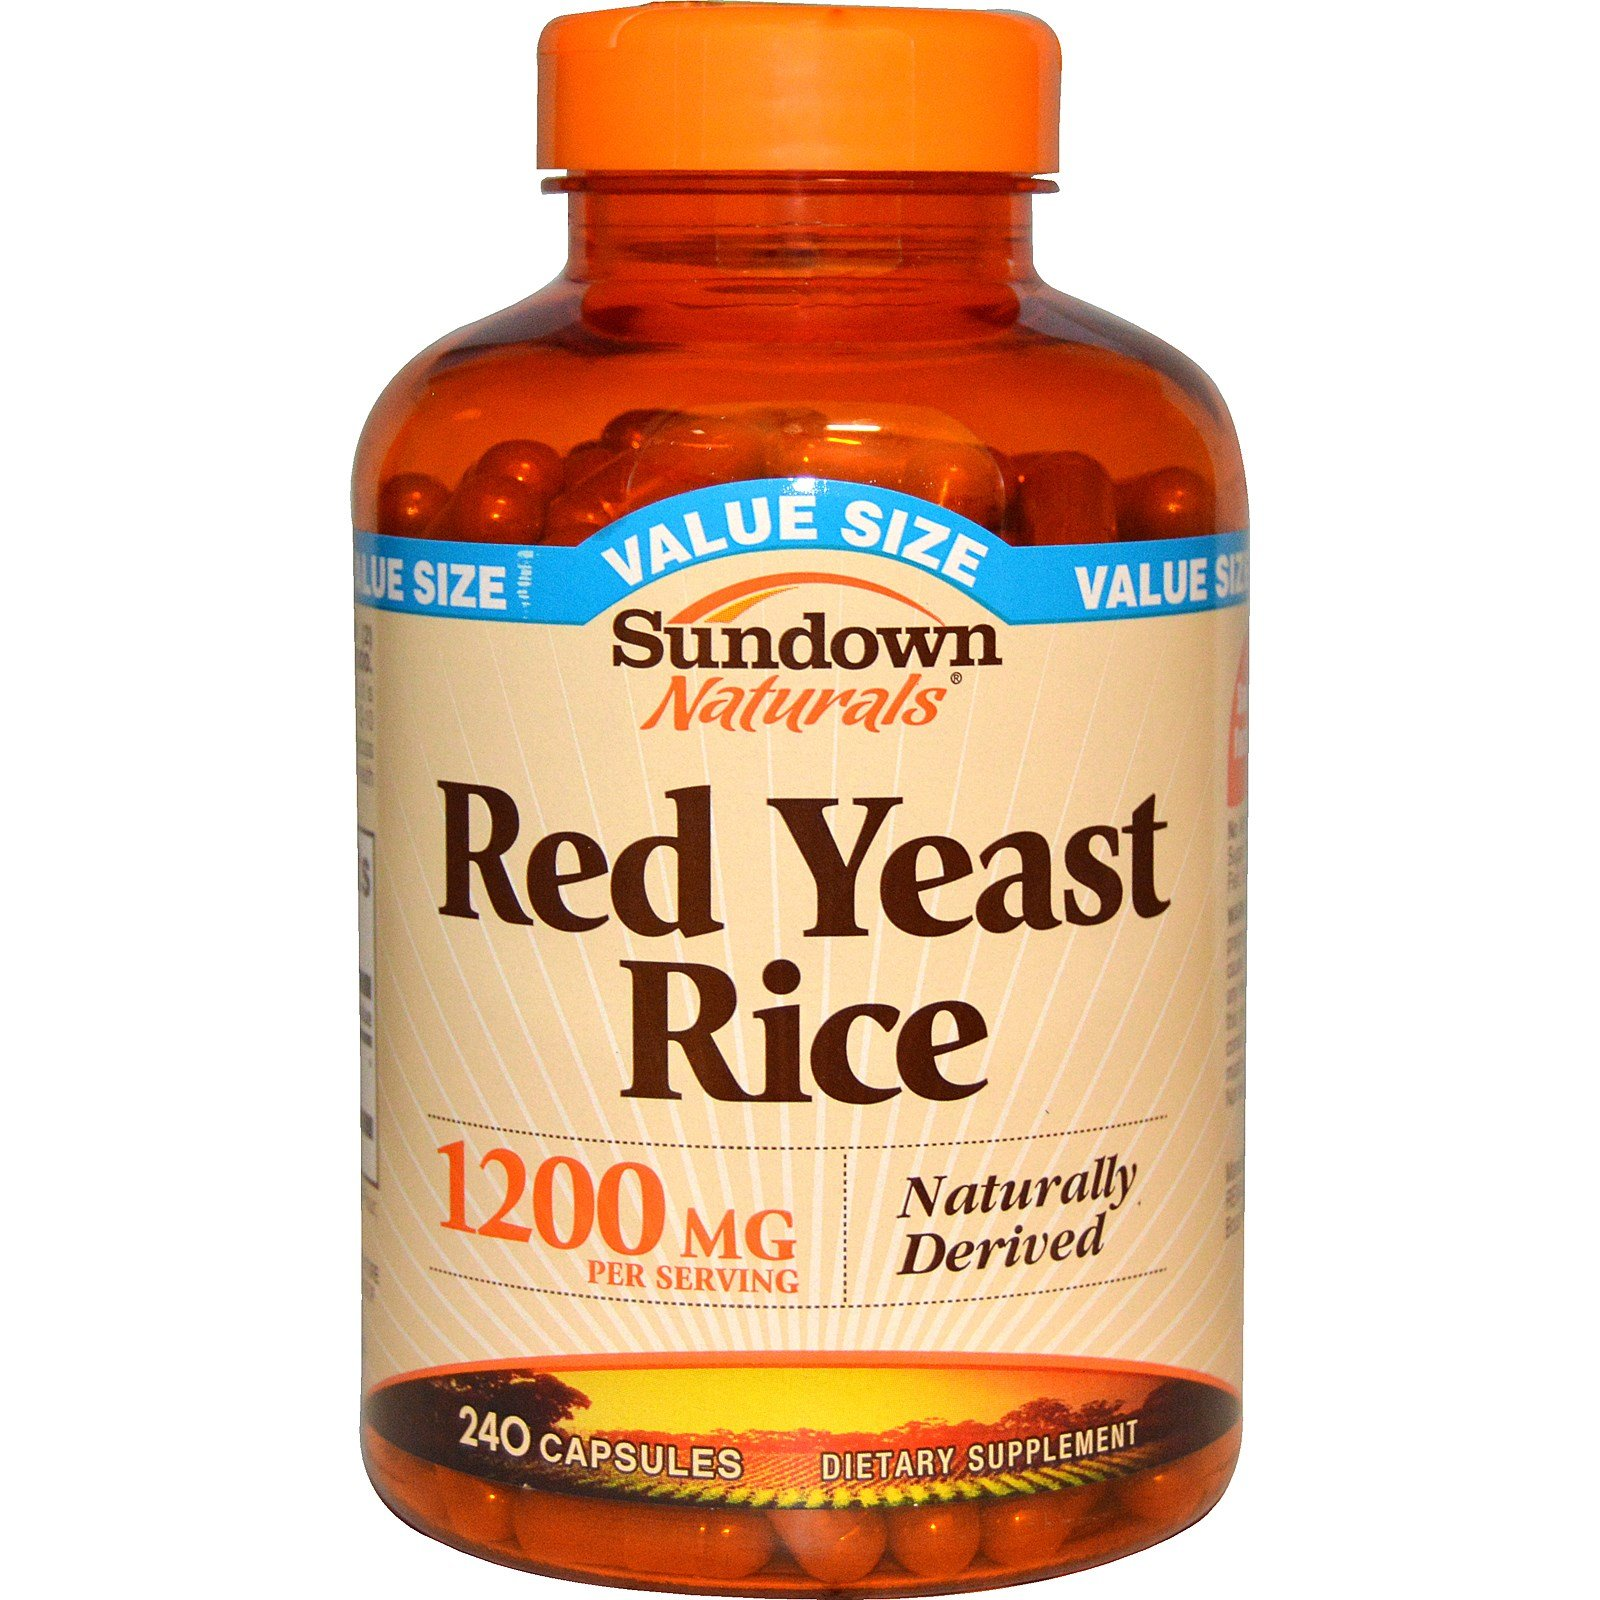 Rexall Sundown Naturals, Red Yeast Rice, 1200 mg, 240 Capsules - 2pc